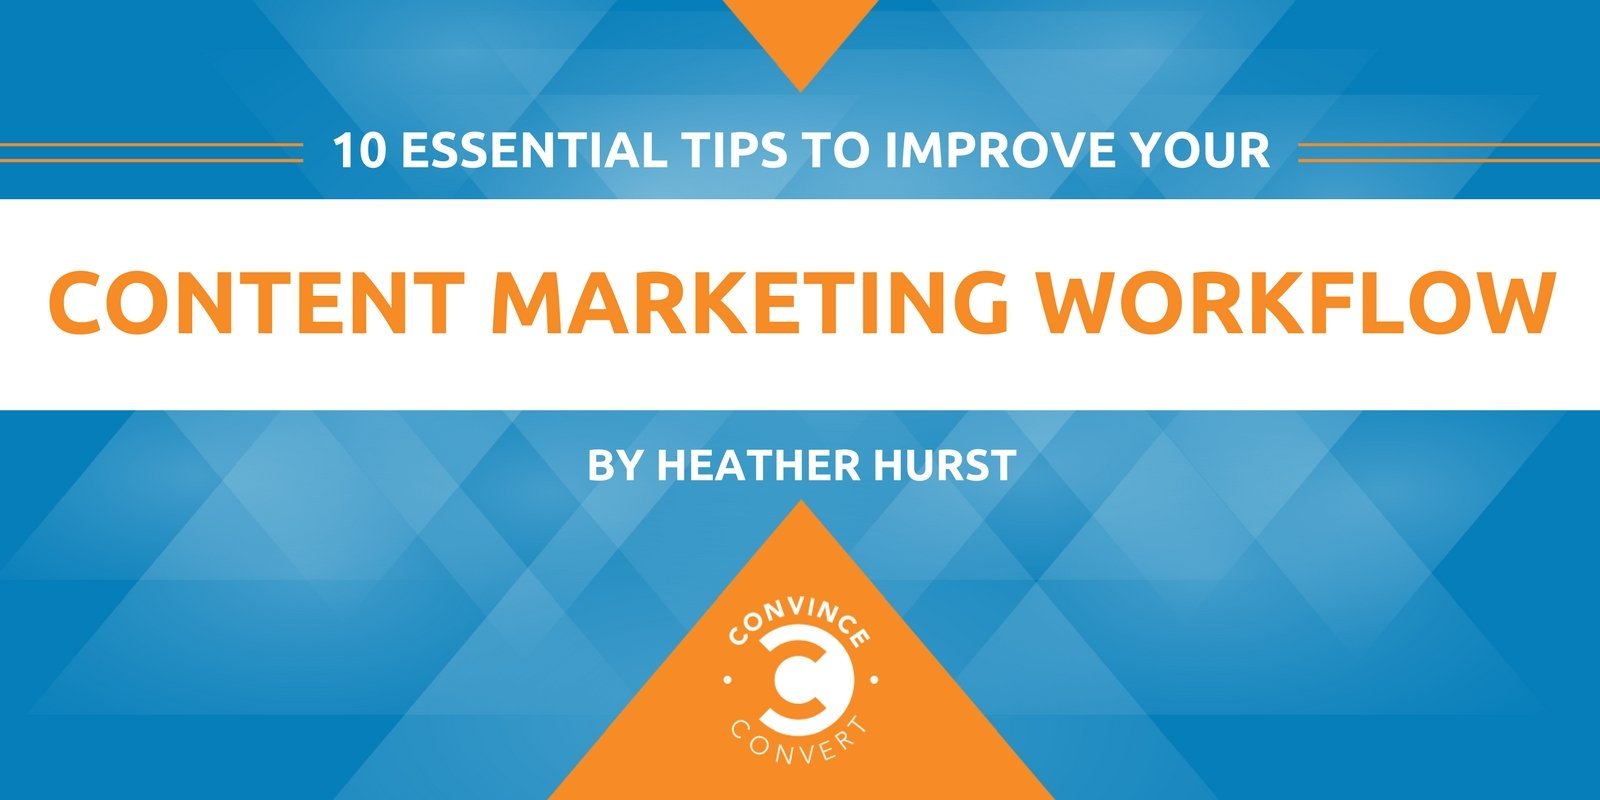 10 Essential Tips to Improve Your Content Marketing Workflow